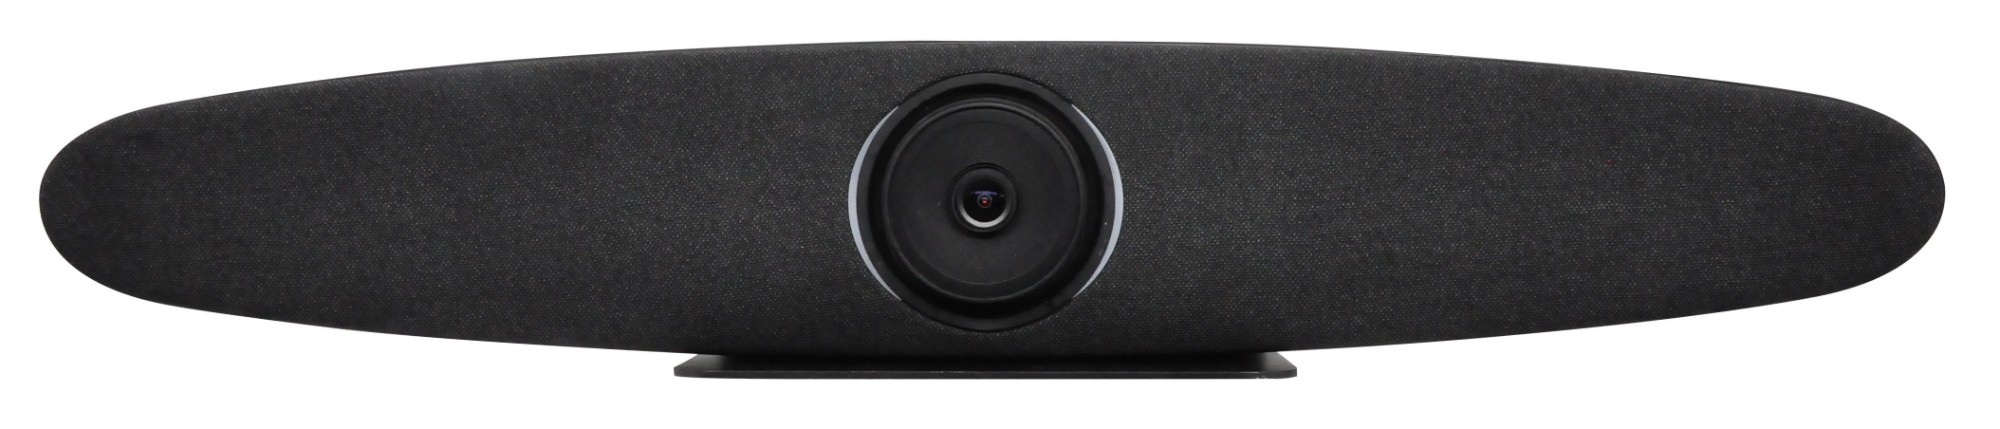 EDIS All in One 4K Video & Sound Bar